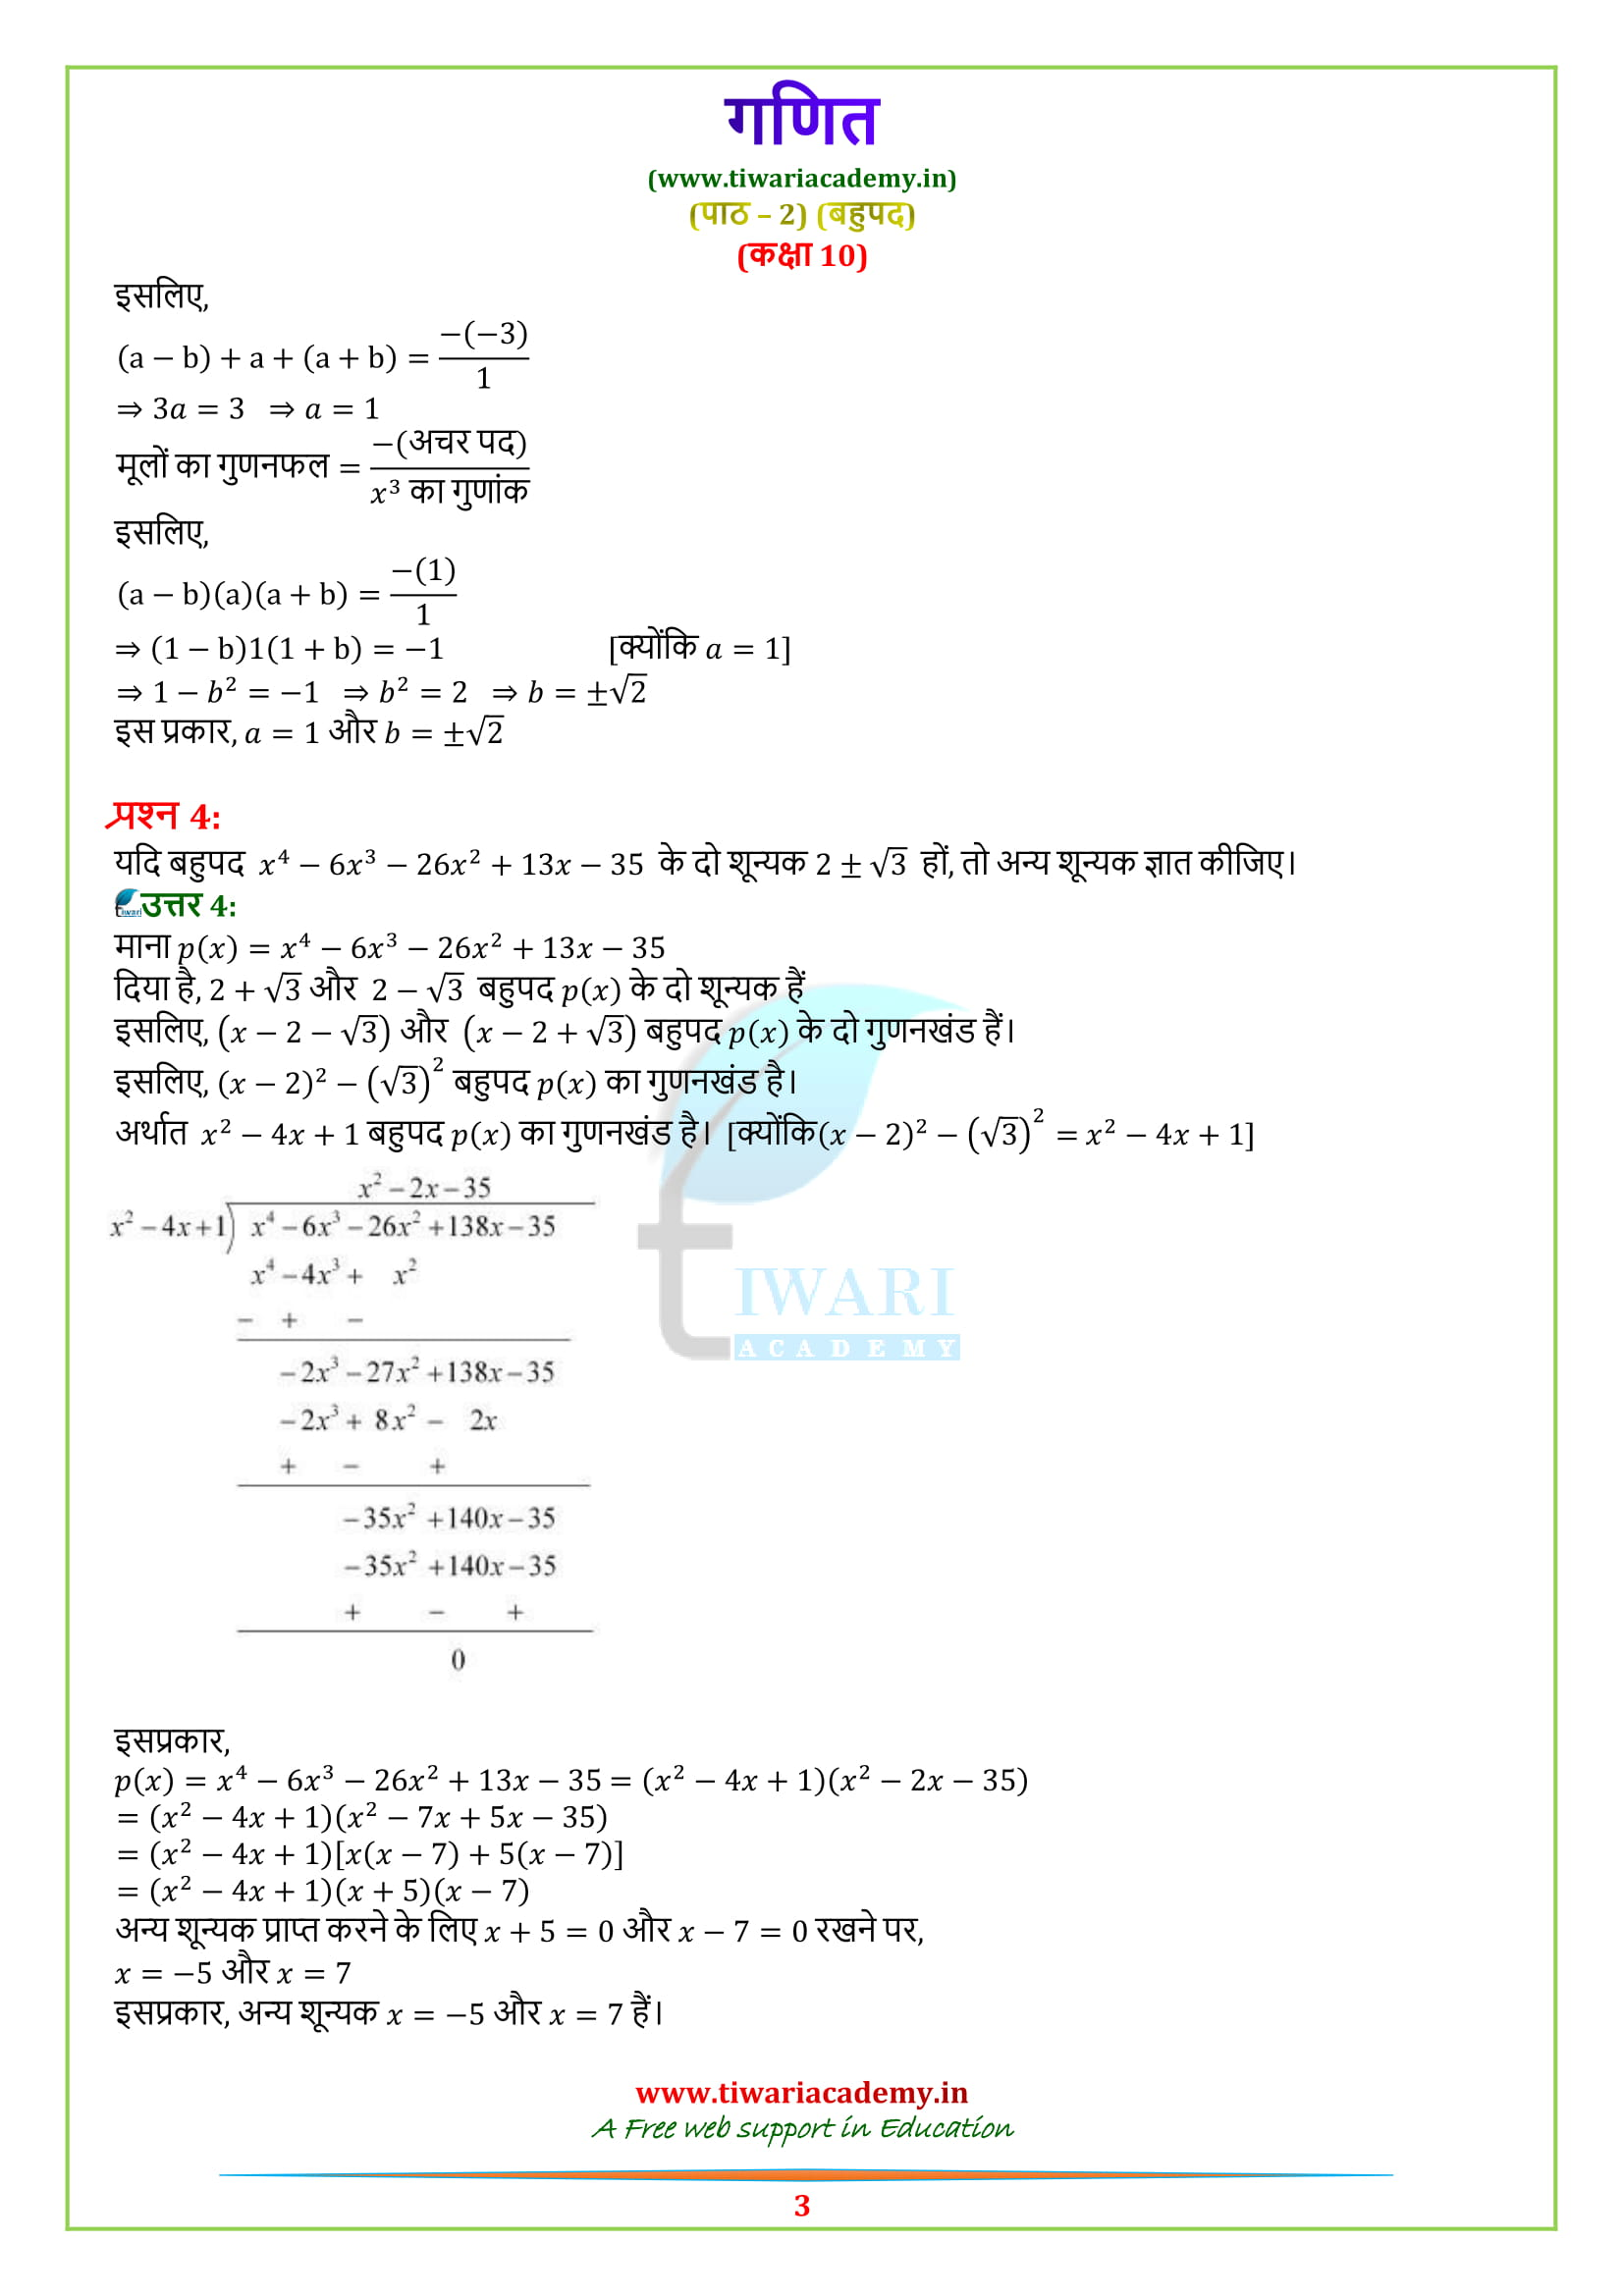 10 Maths Exercise 2.4 updated for 2019 up and cbse board.